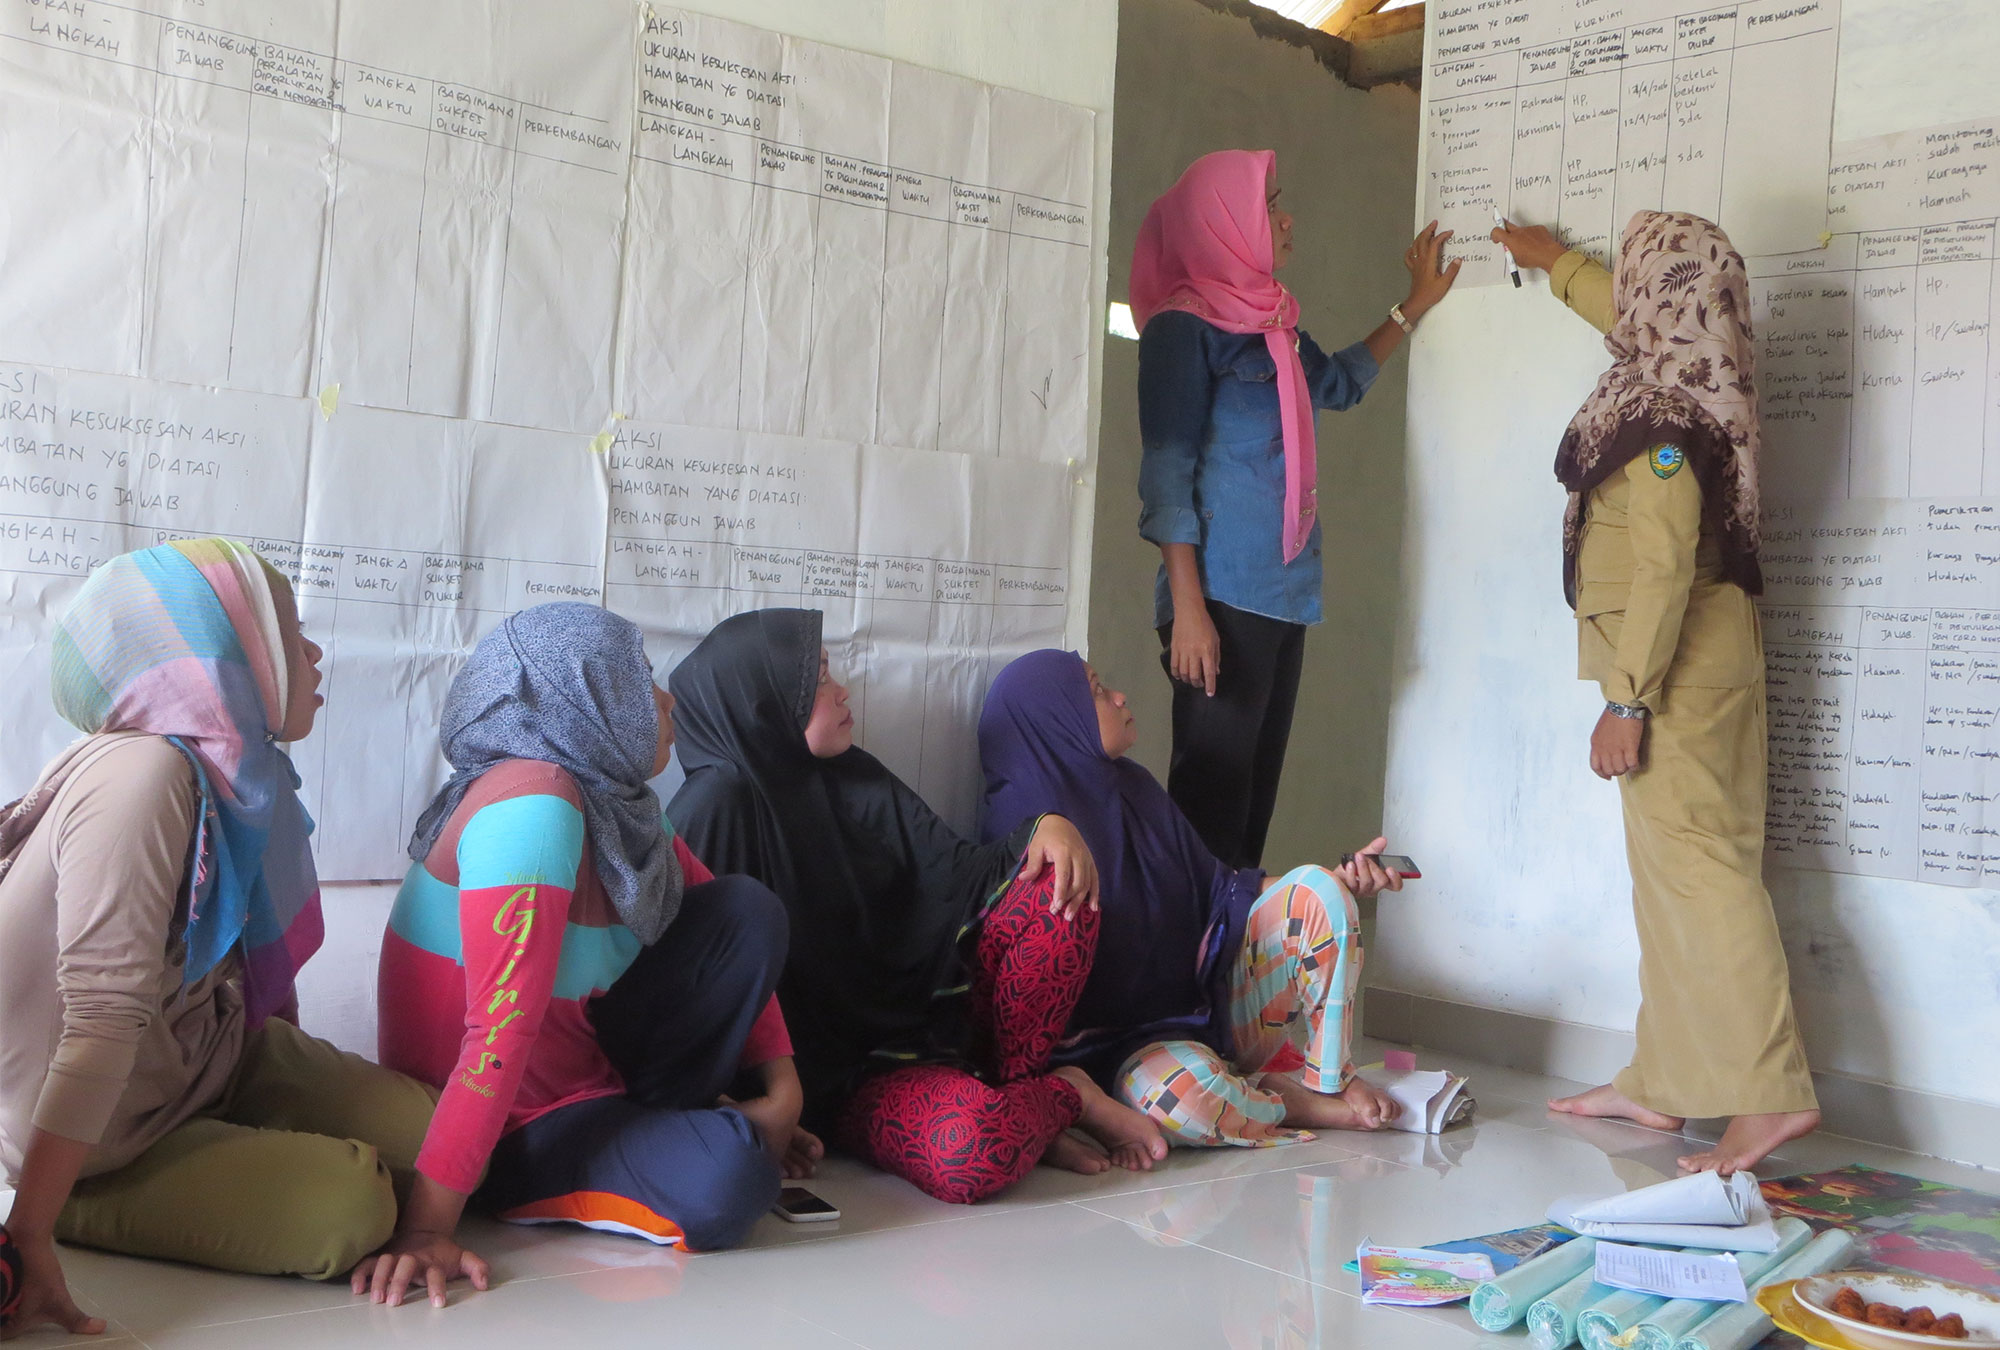 Group of women in room with walls covered in paper which they are taking notes on and discussing